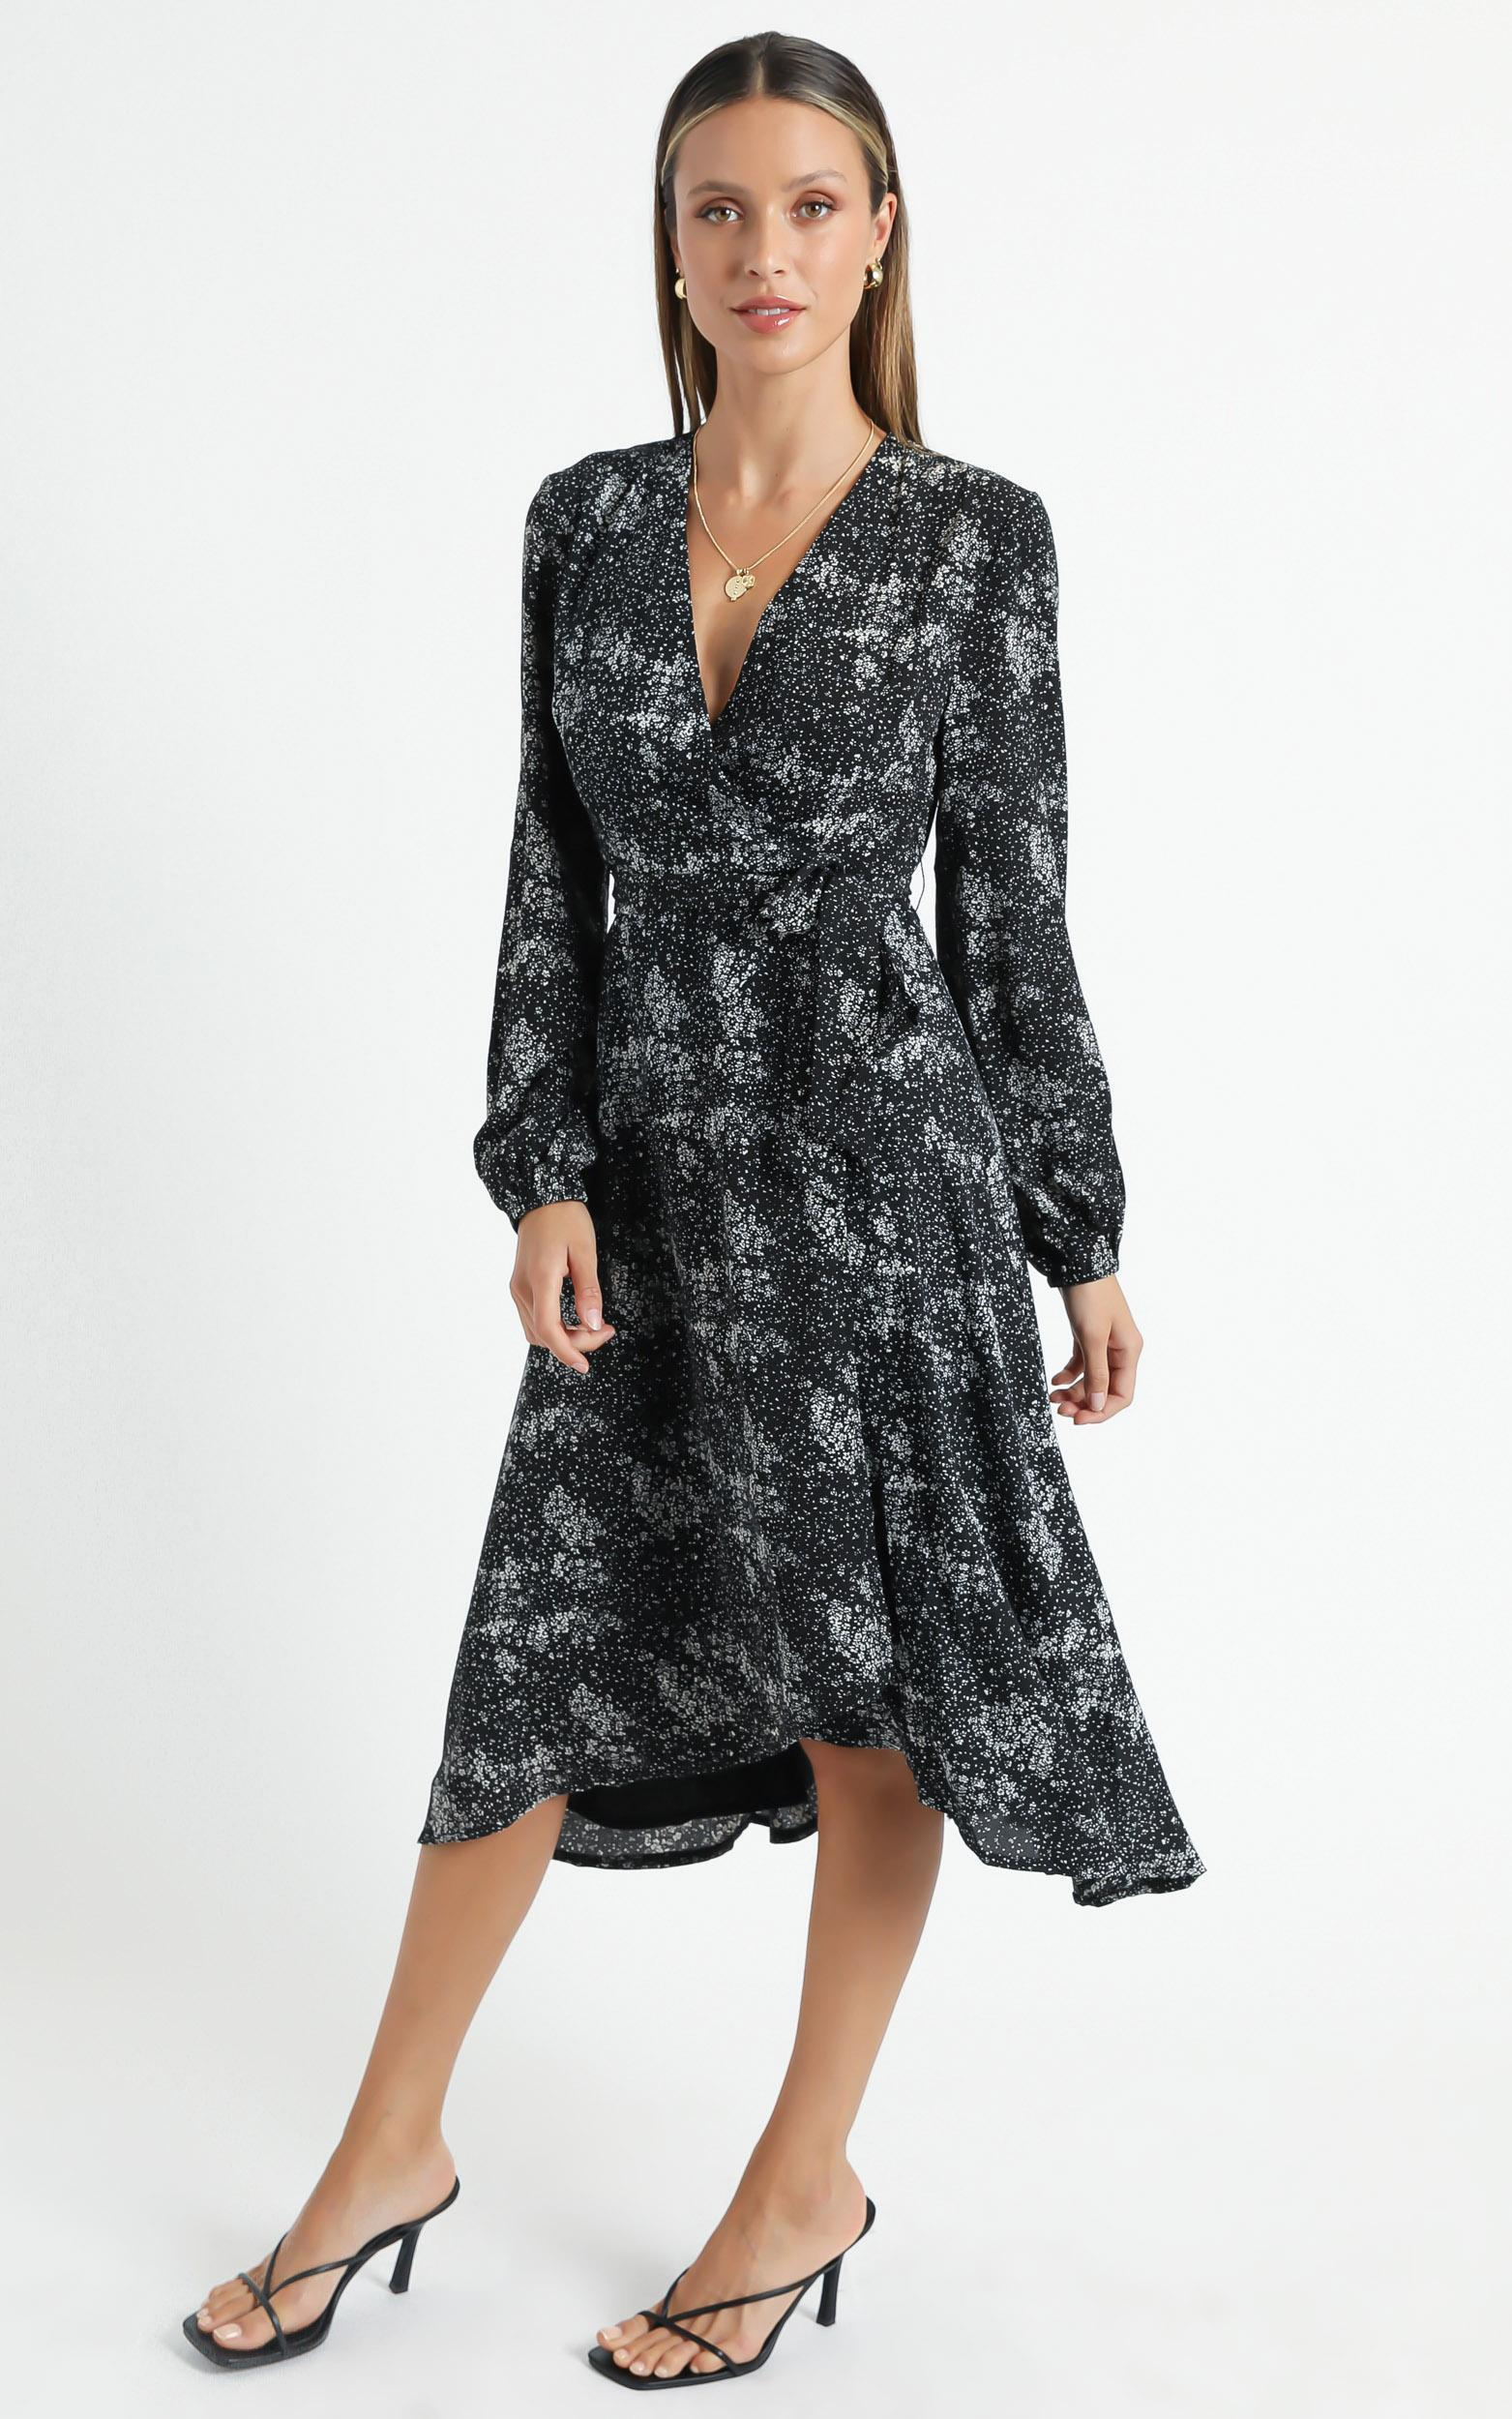 Tuscan Fields Dress in black floral - 4 (XXS), BLK1, hi-res image number null